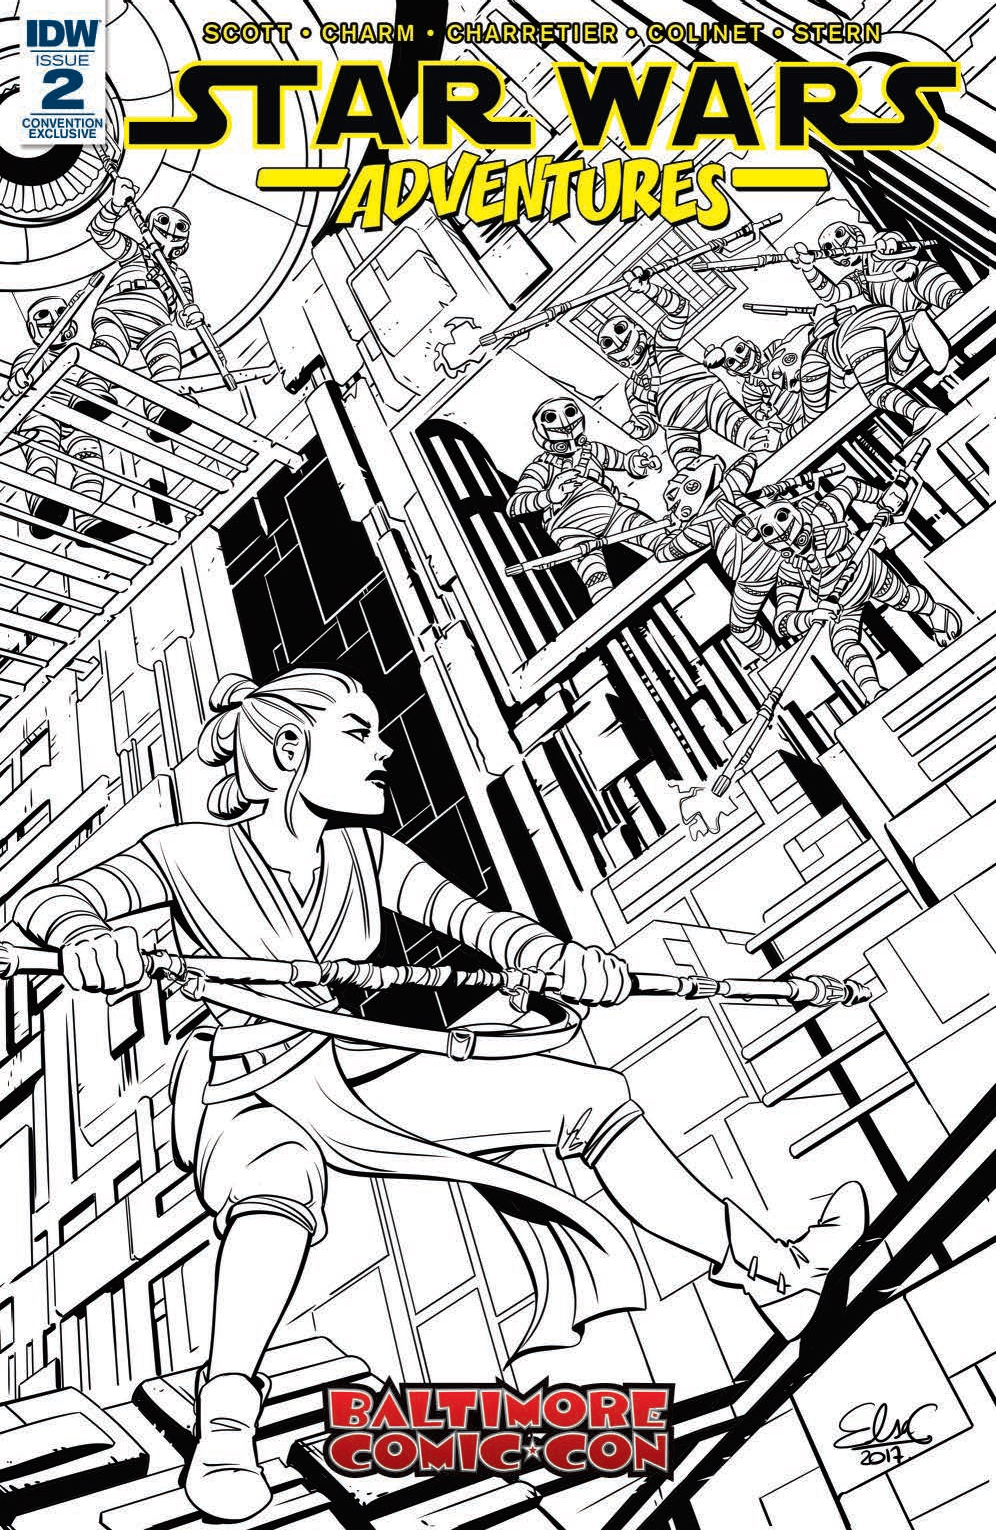 Star Wars Adventures #2 (Elsa Charretier Baltimore Comic-Con Black & White Variant Cover) (20.09.2017)